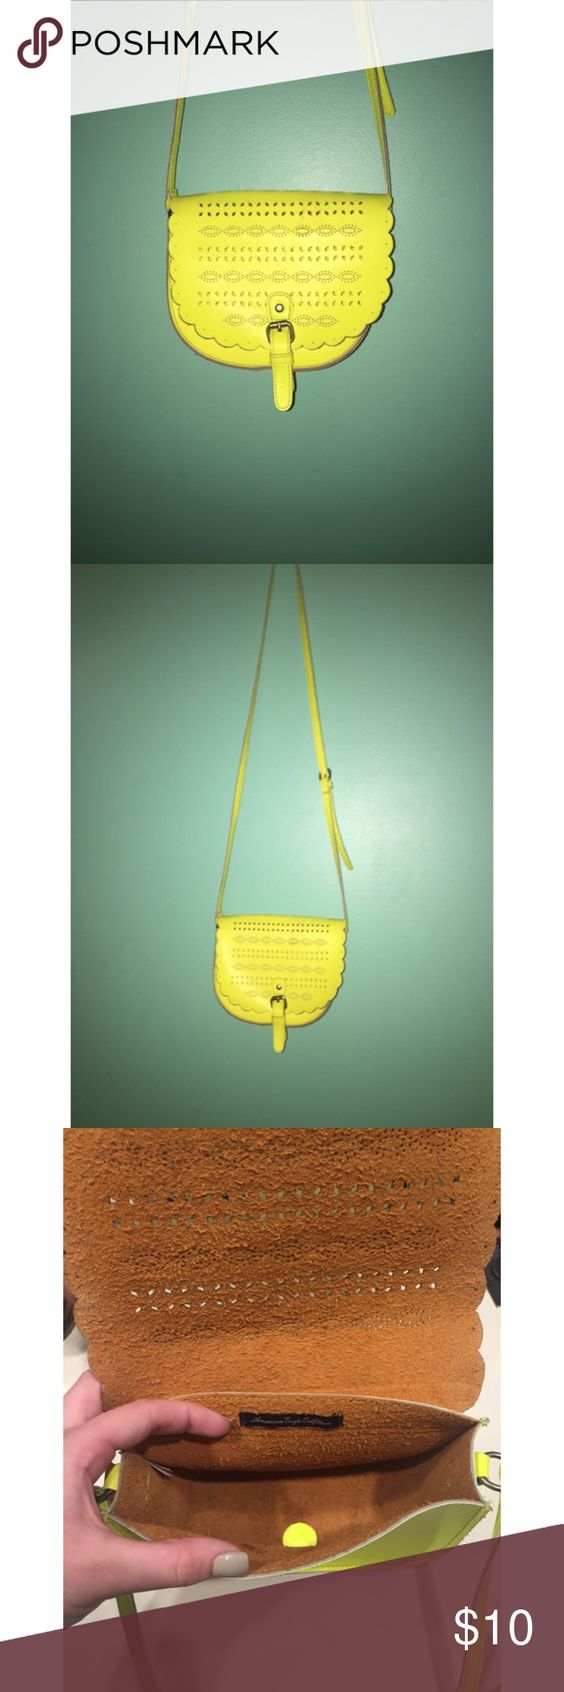 American Eagle Crossbody Neon yellow cross body in great condition! I've only used it a few times but when I did use it I was able to store my phone, wallet and keys in it. American Eagle Outfitters Bags Crossbody Bags